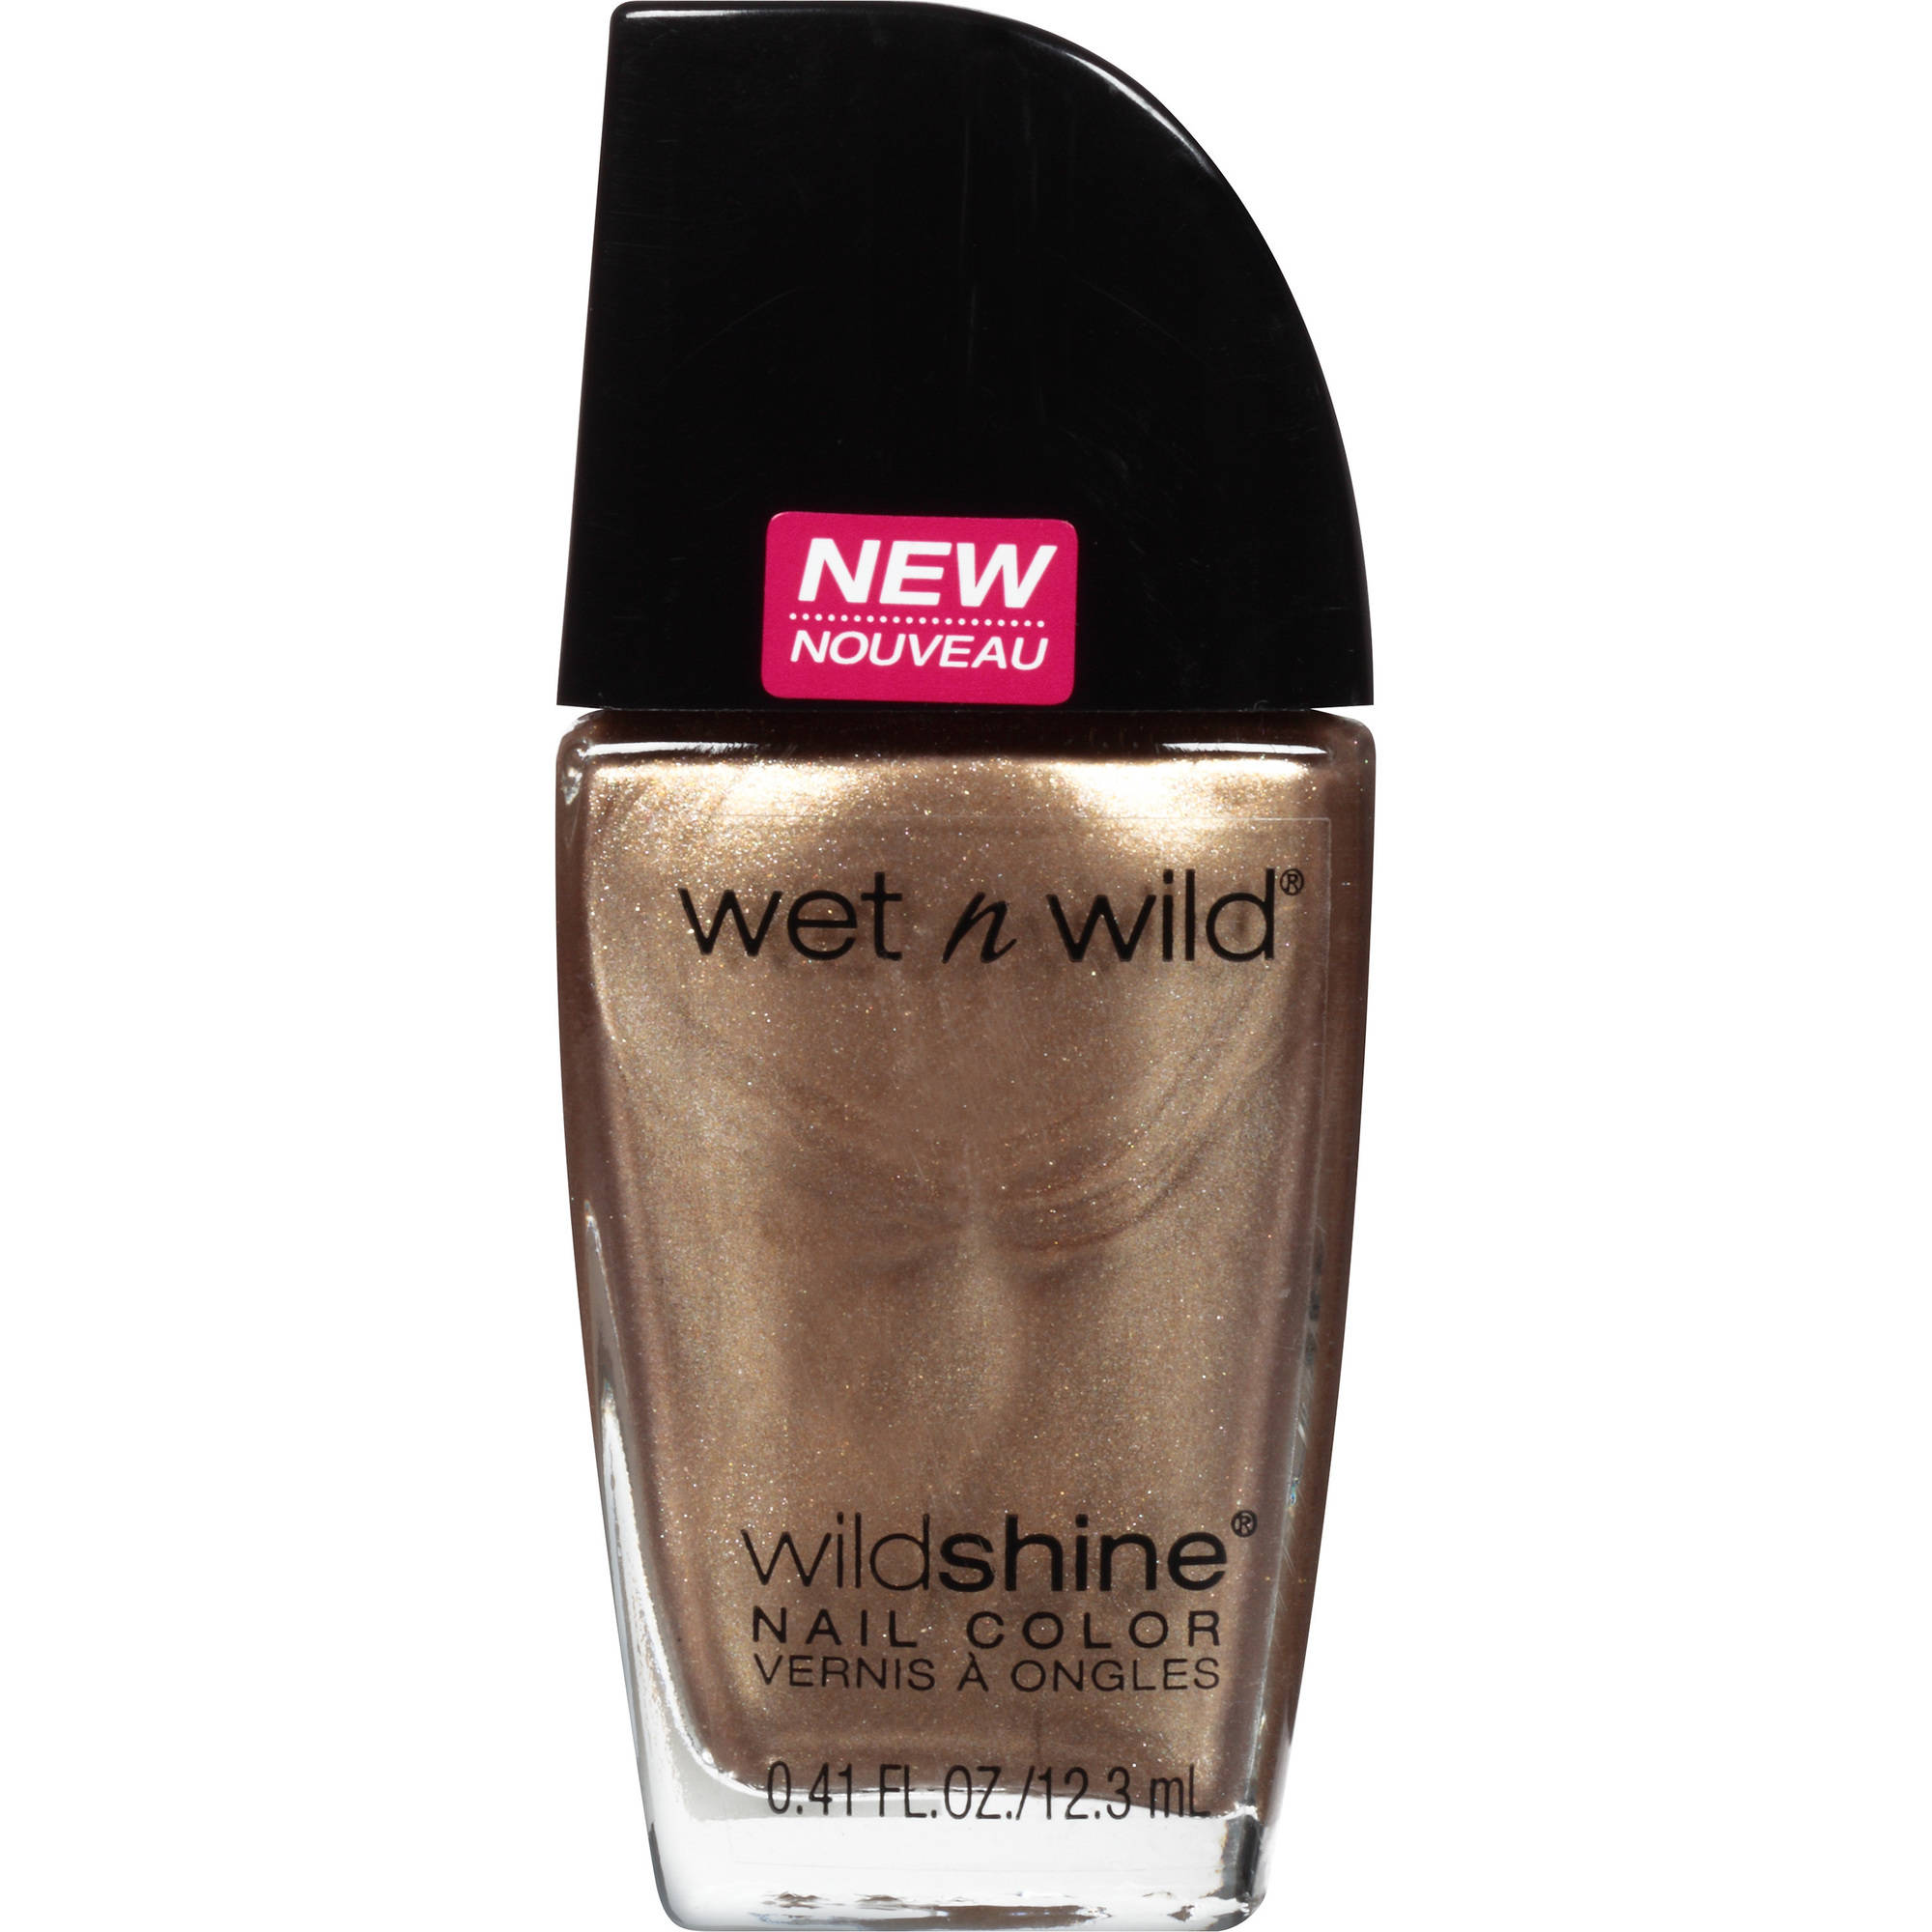 Wet N Wild Wild Shine Nail Color, 470B Ready to Propose, 0.41 fl oz